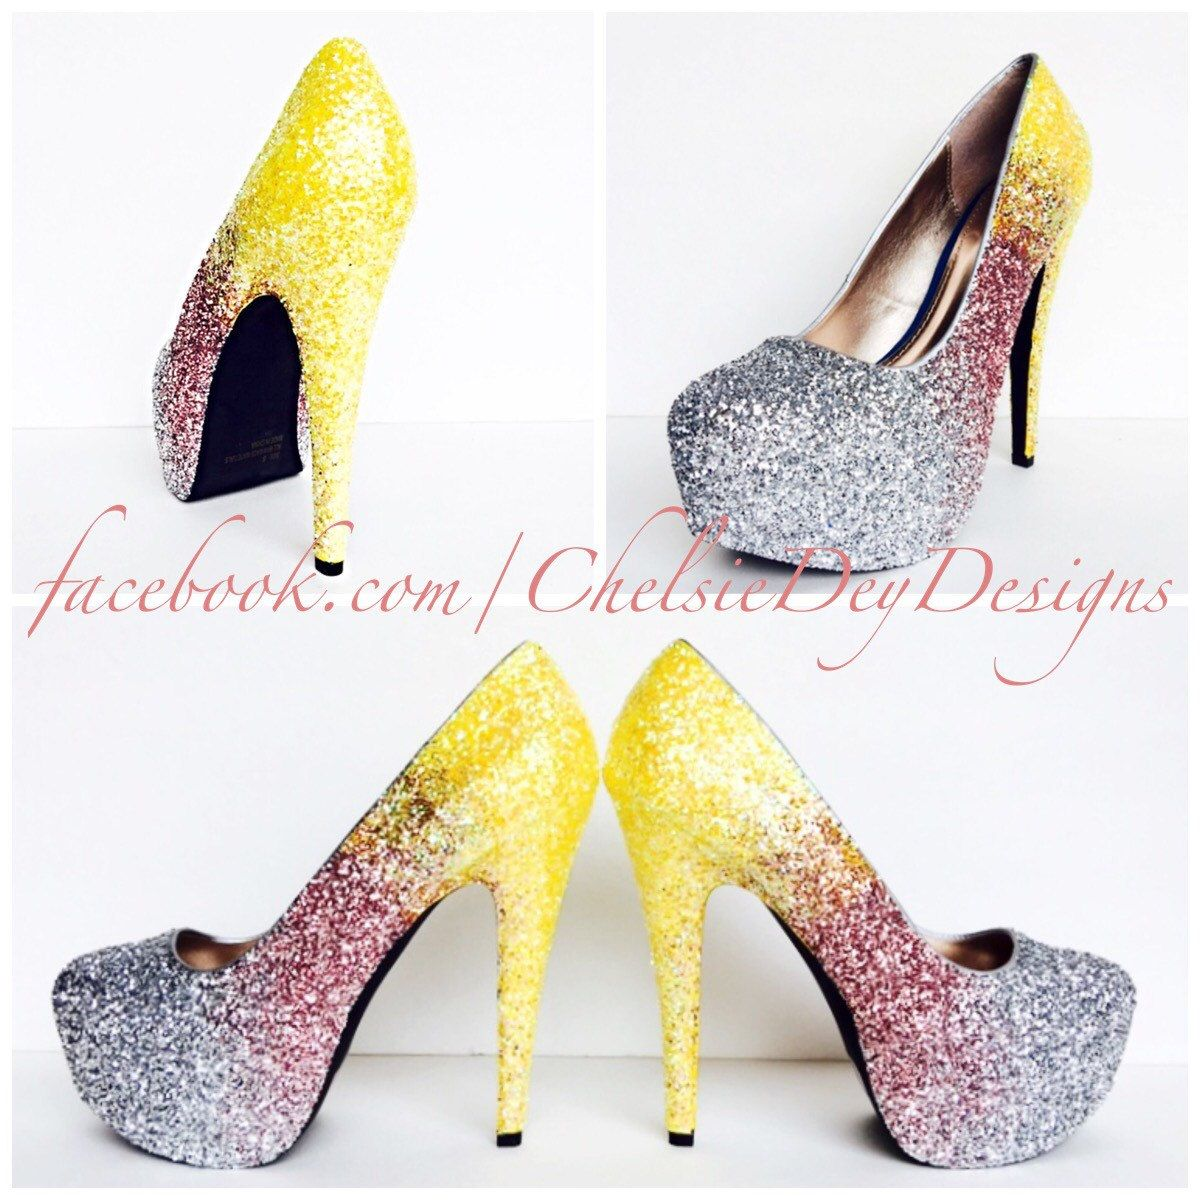 070d40a0864 Glitter High Heels - Pink Silver Yellow Pumps - Ombre Fade Platform Shoes -  Sparkly Wedding High Heels - Prom Shoes - pinned by pin4etsy.com